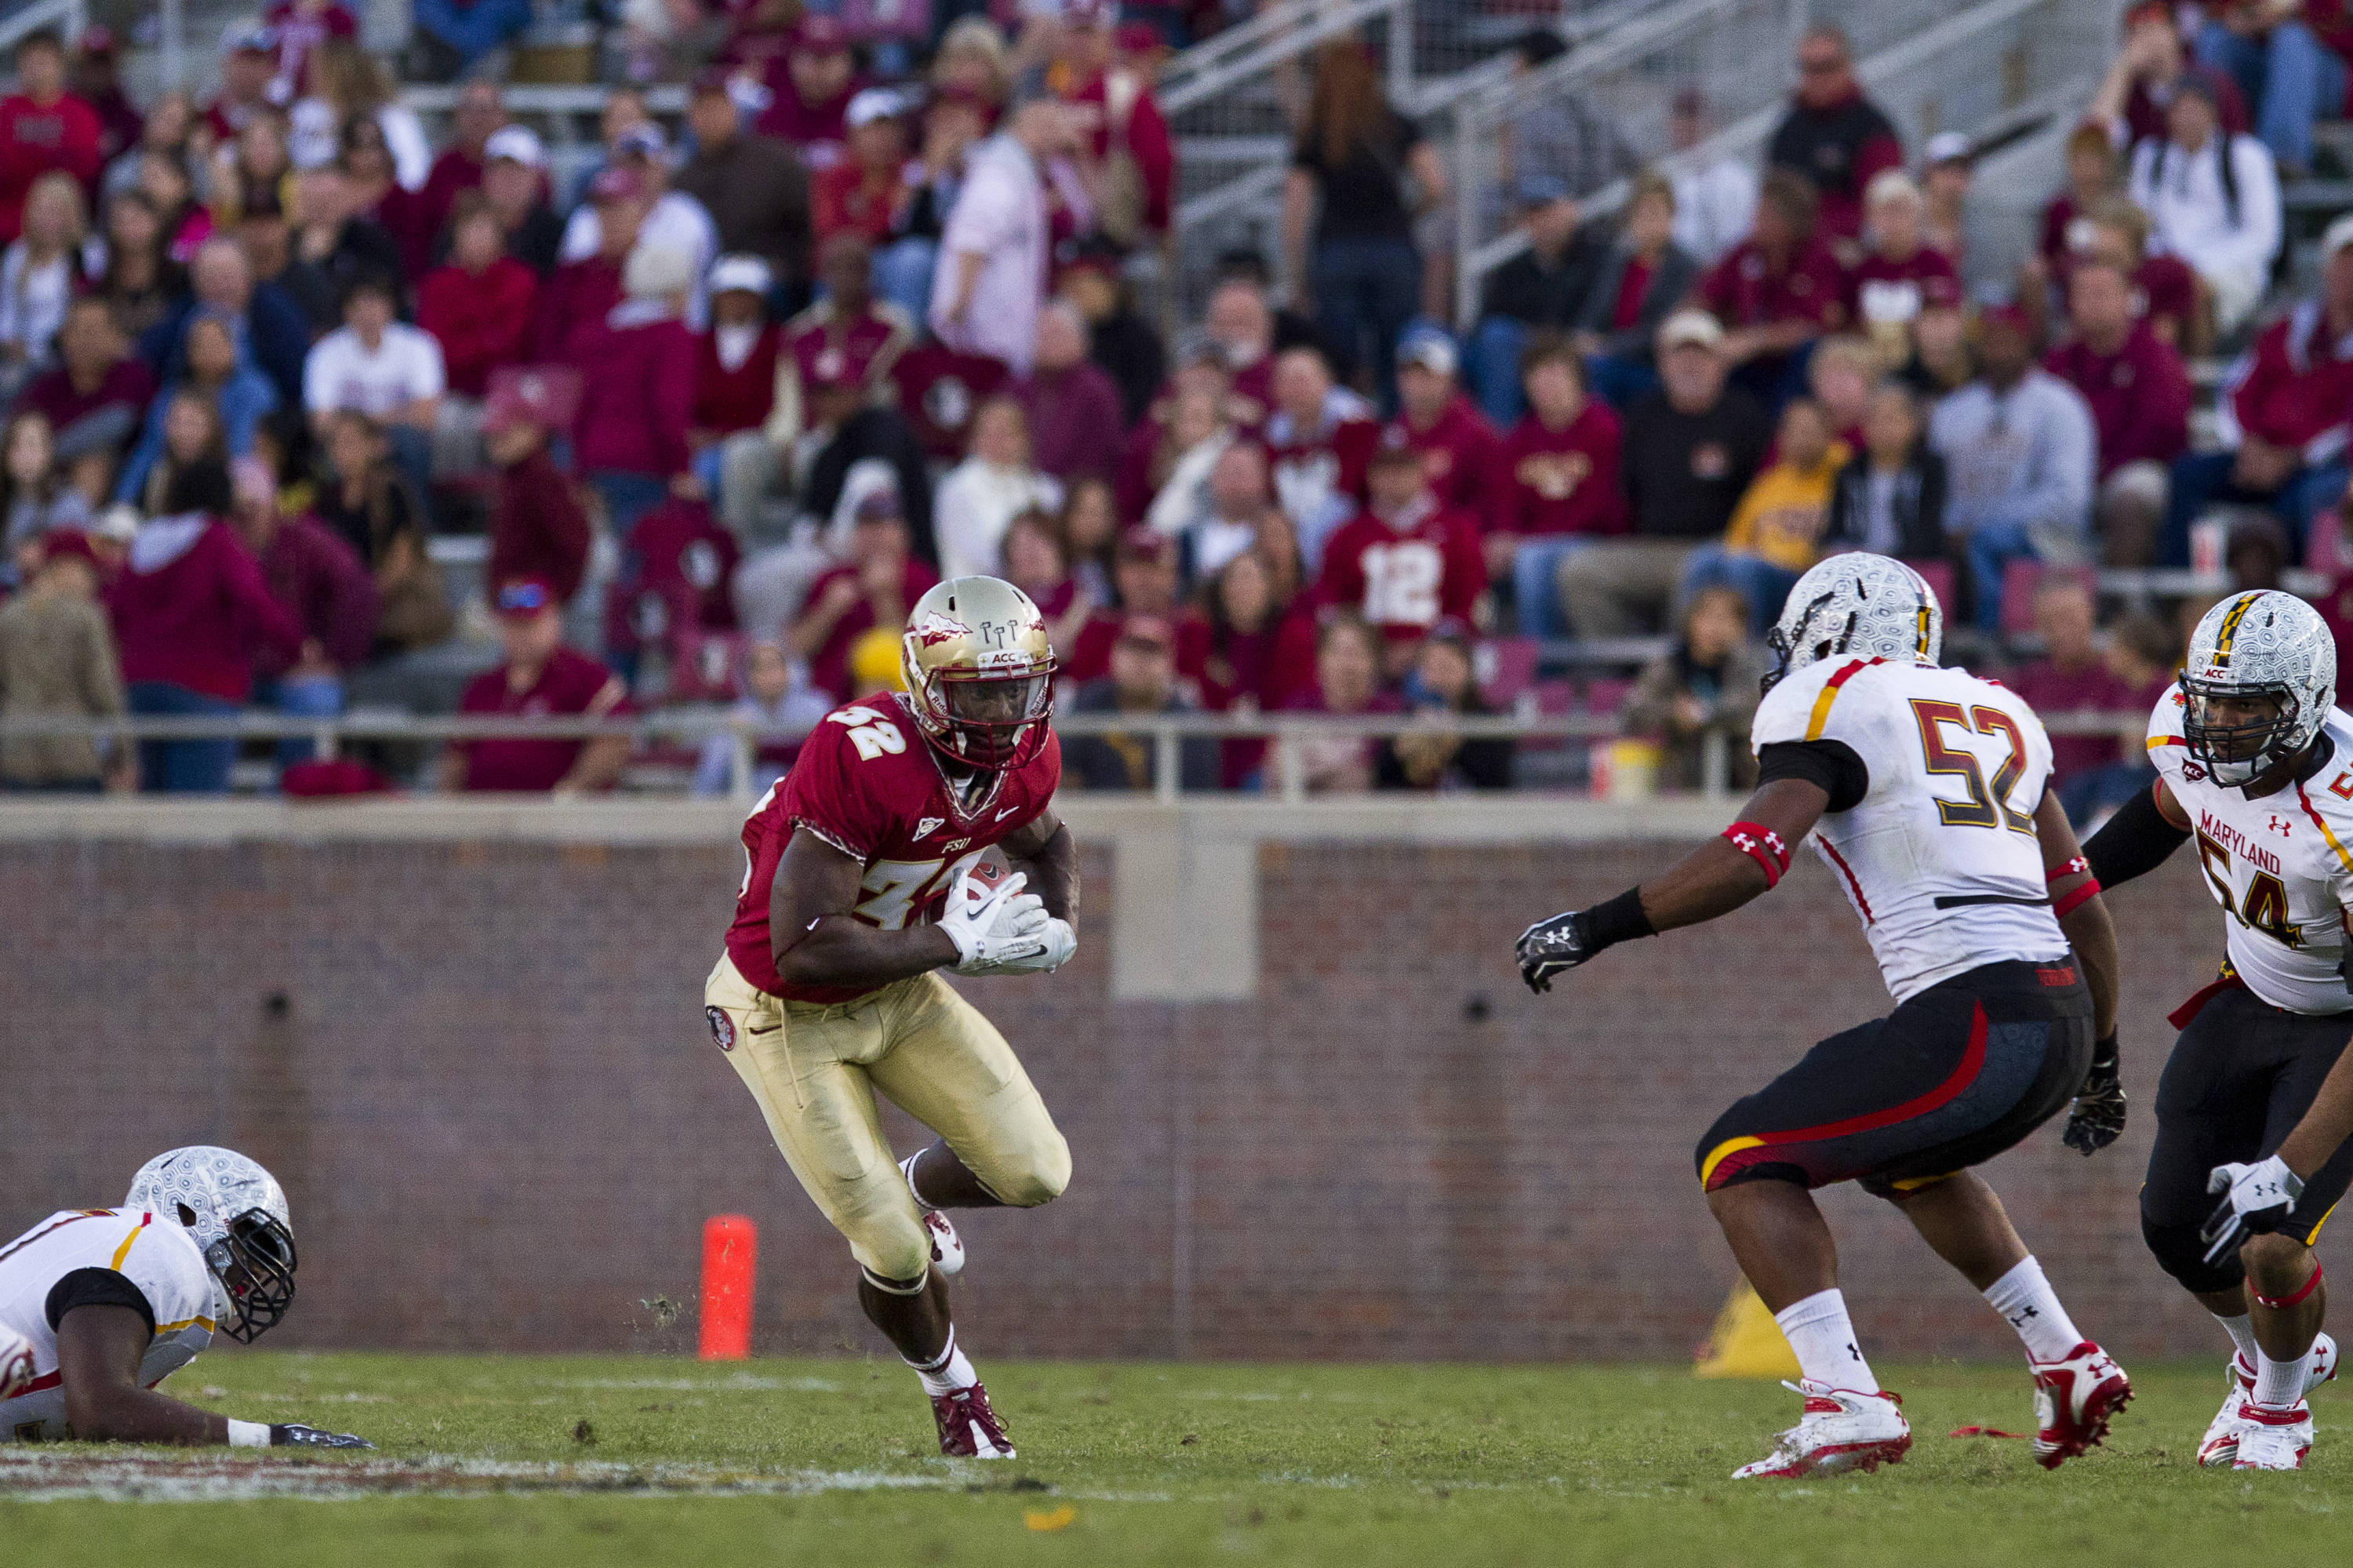 Jr. Wilder James (32) returns the ball during the football game against Maryland in Tallahassee, Florida on October 22, 2011.